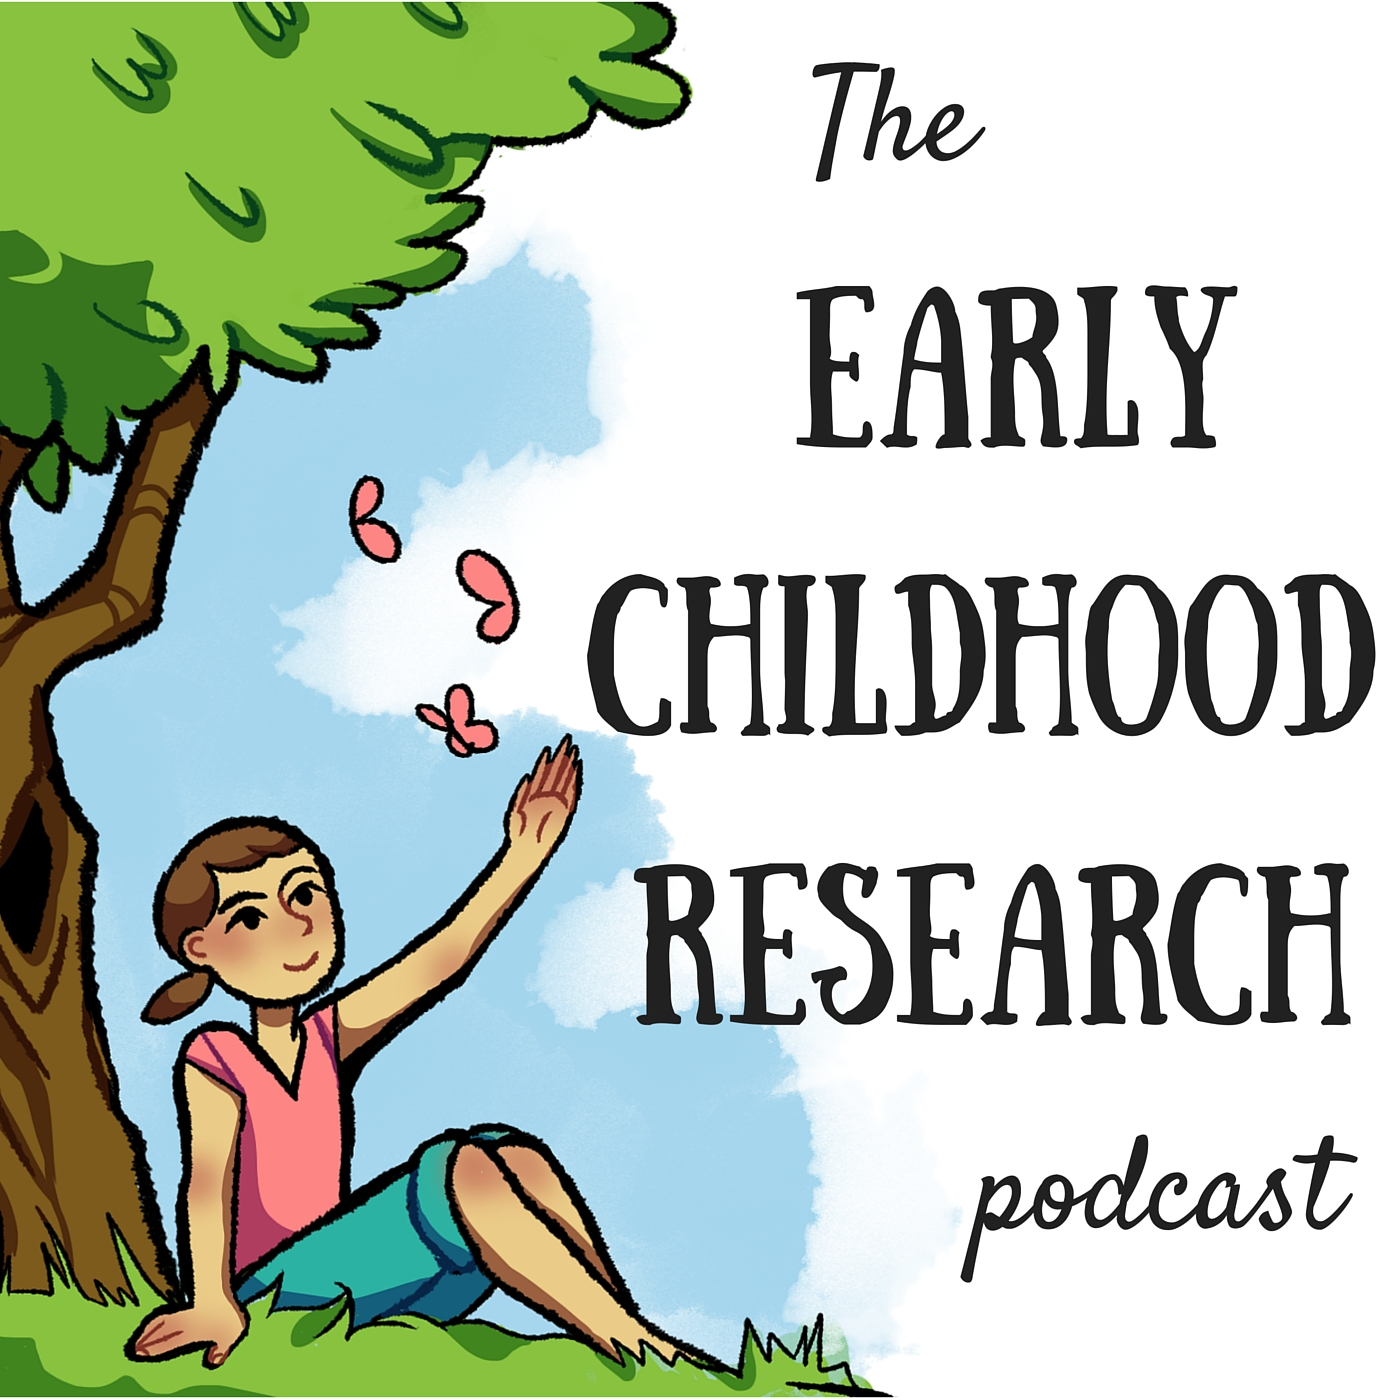 early childhood literacy research papers How to cite this article: christie jf, roskos ka play's potential in early literacy development in: tremblay re, boivin m, peters rdev, eds smith pk, topic ed encyclopedia on early childhood development [online].